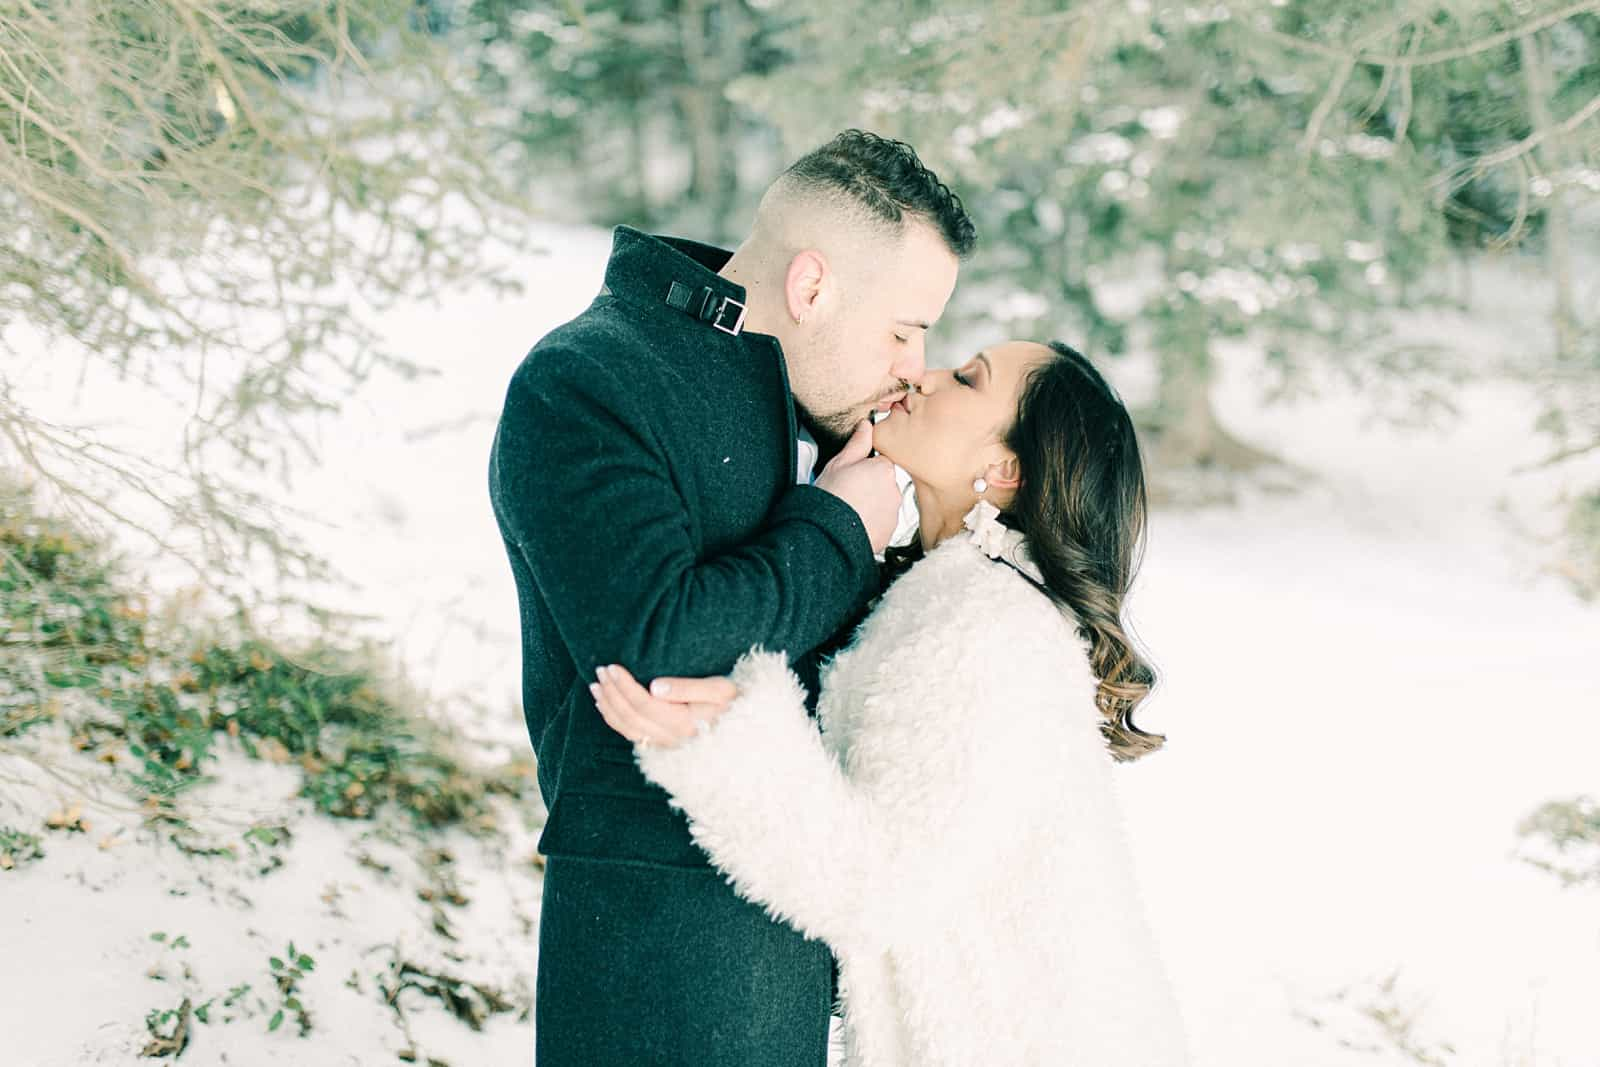 Bride and groom kiss in the winter woods